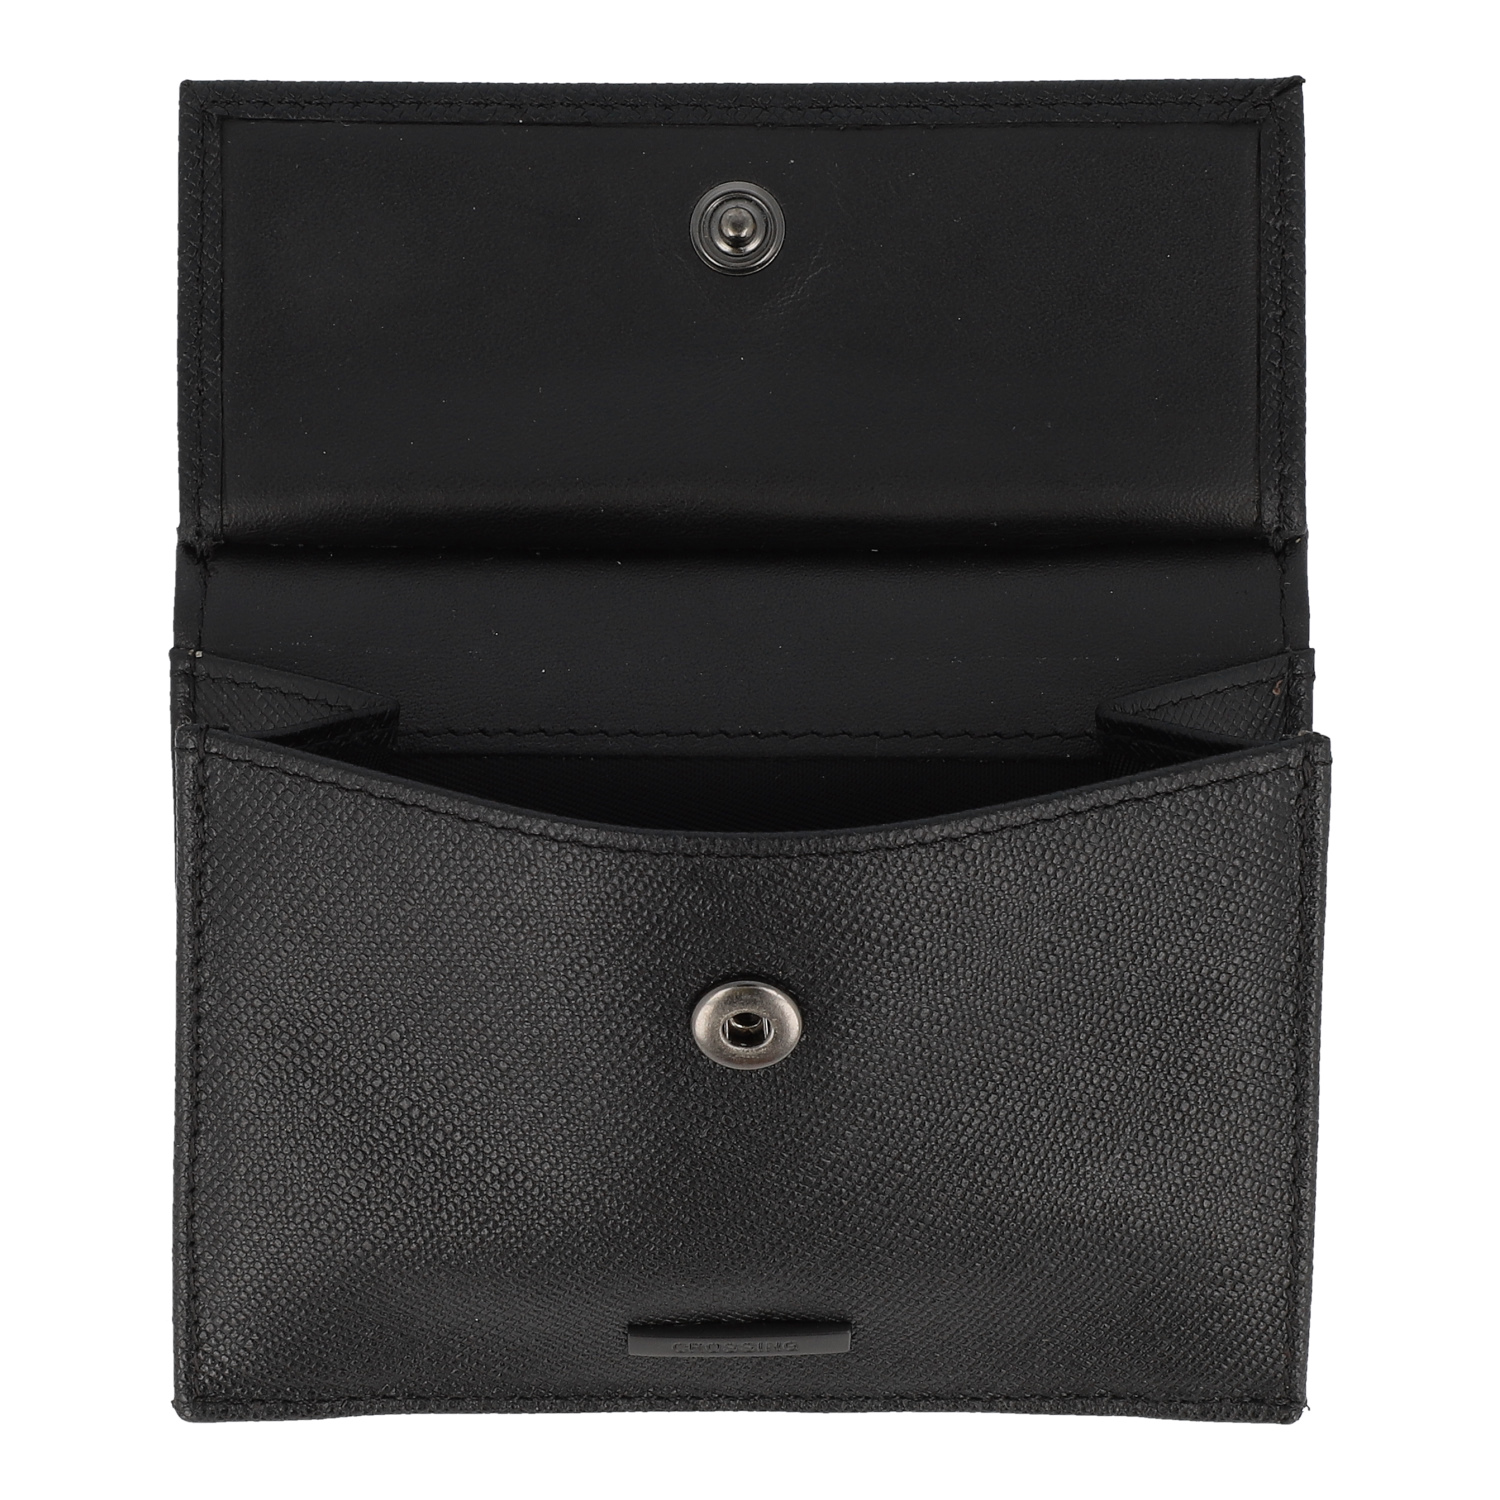 f209c9e34d15 Buy Crossing Saffiano Coin Pouch With Card Case - Black in Singapore &  Malaysia - The Wallet Shop